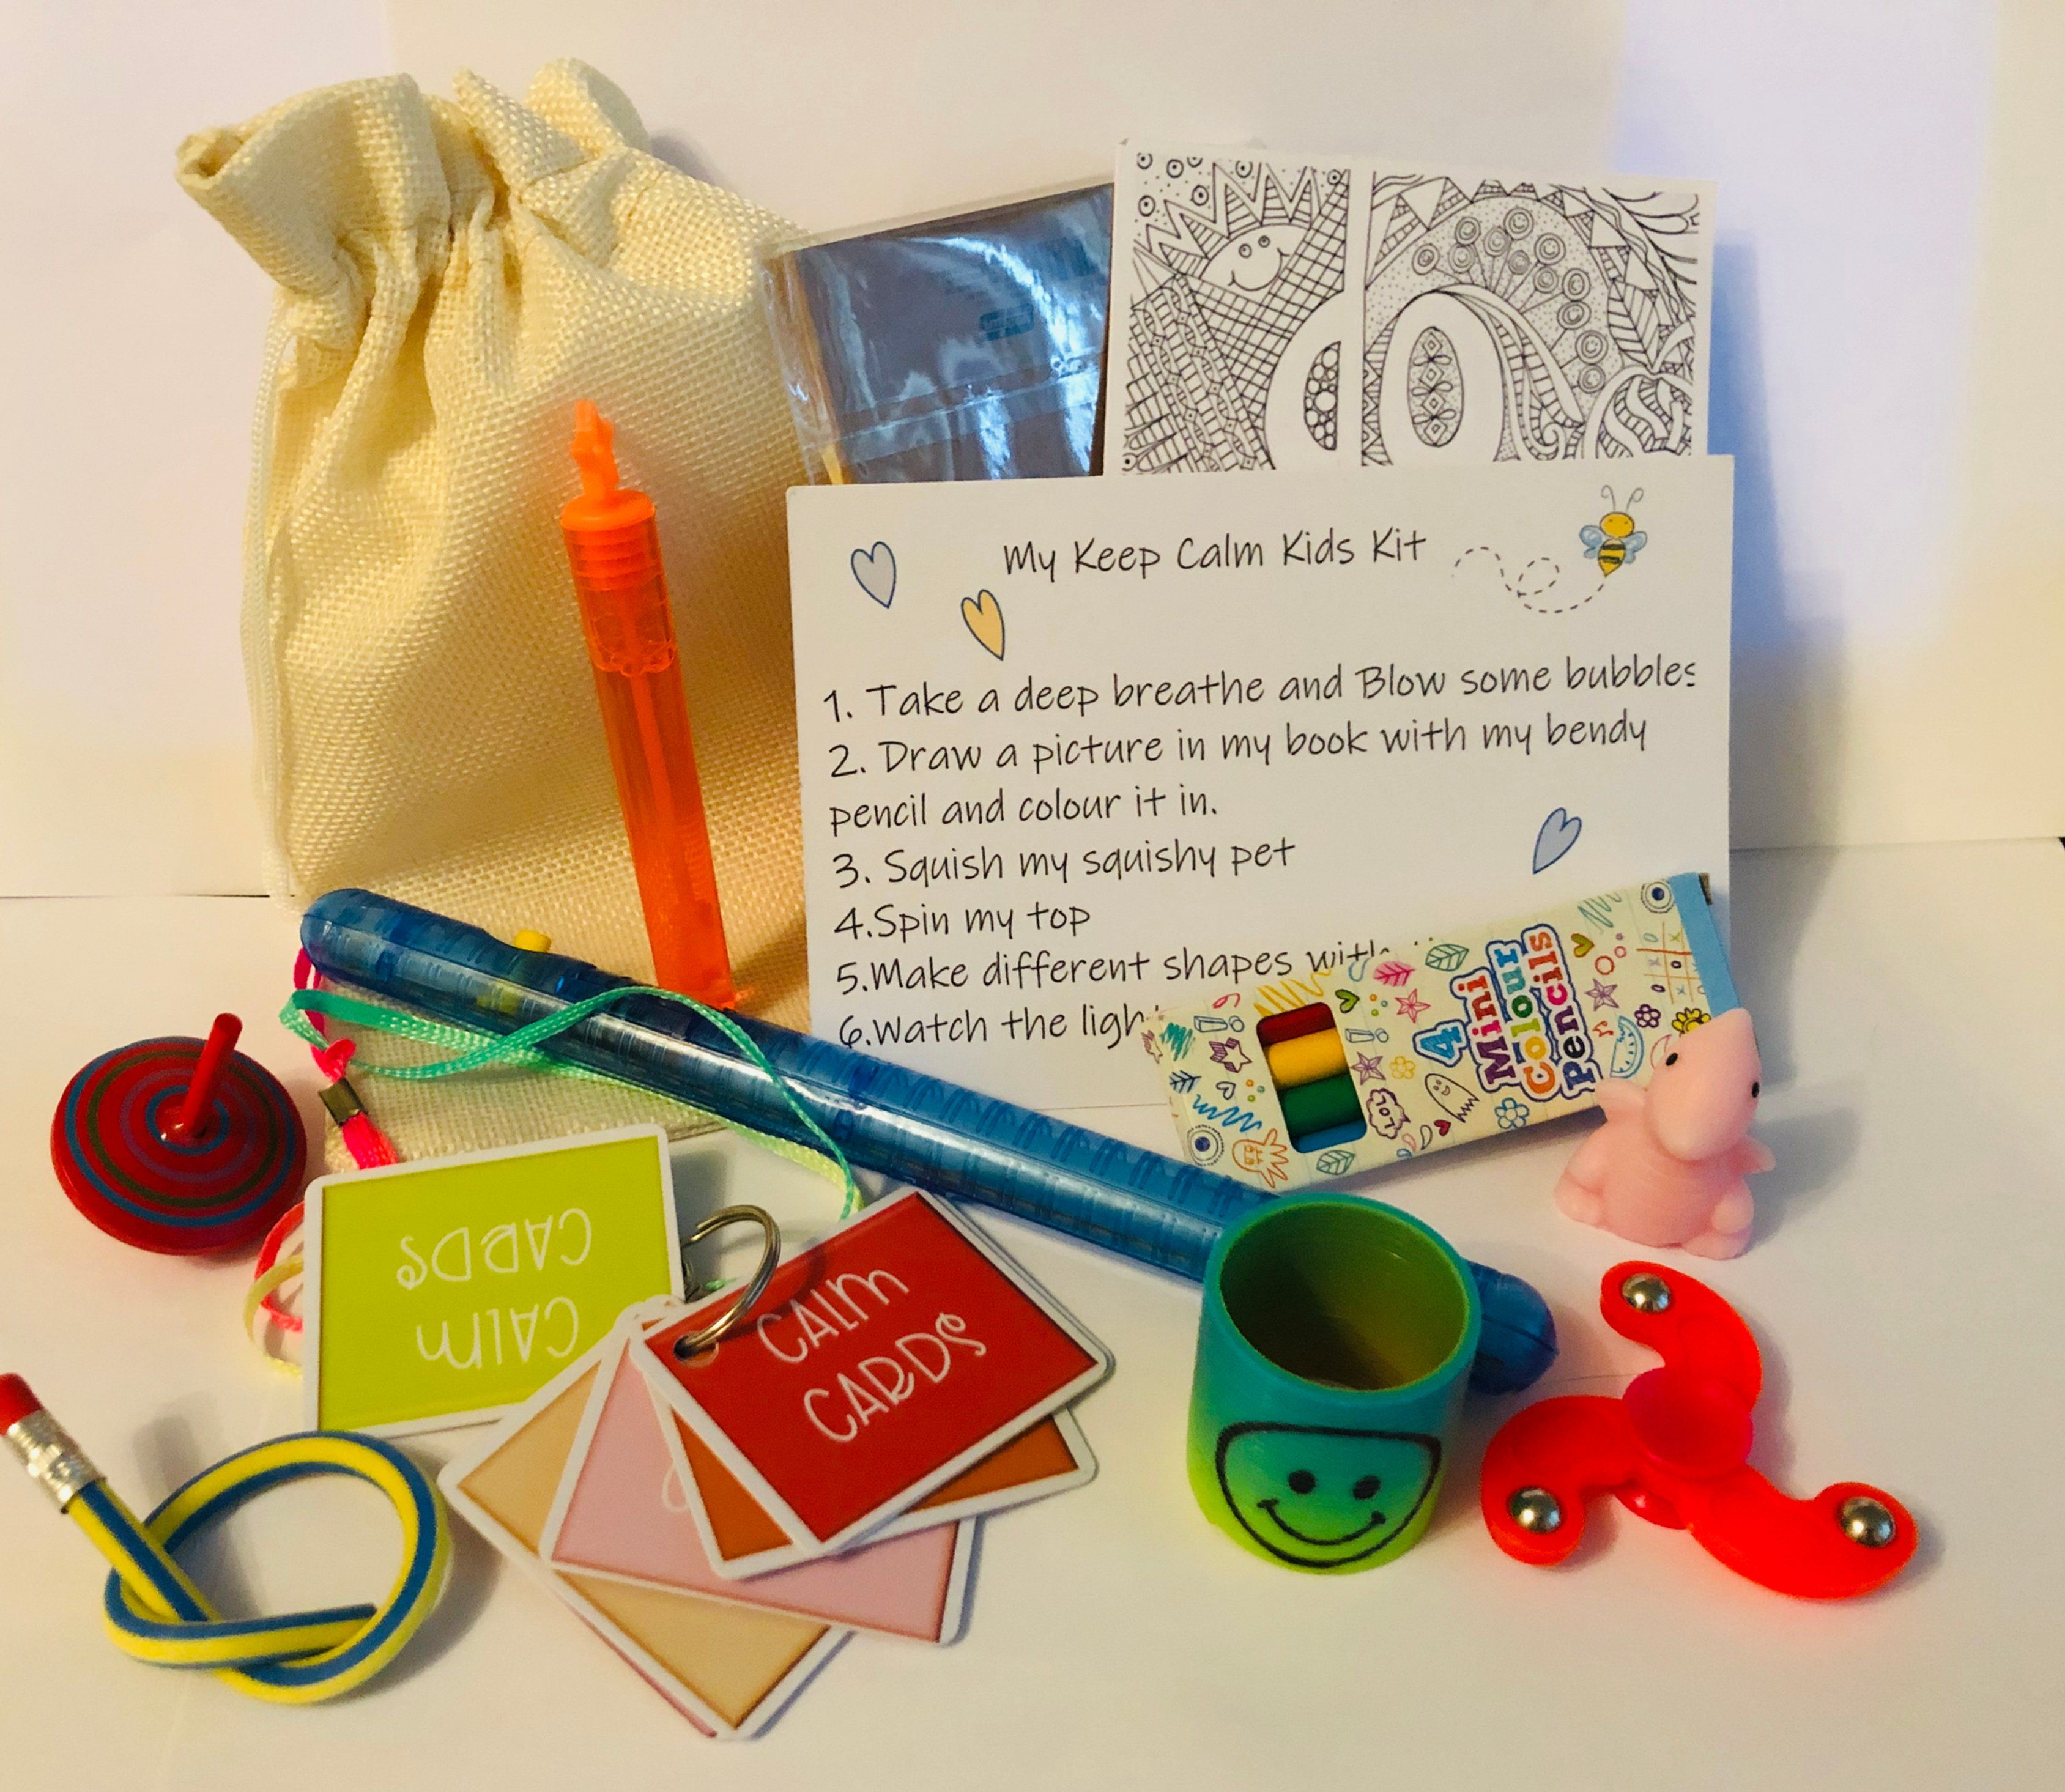 Coping Strategy Bag For Children Kits For Kids Calm Kids Post Cards